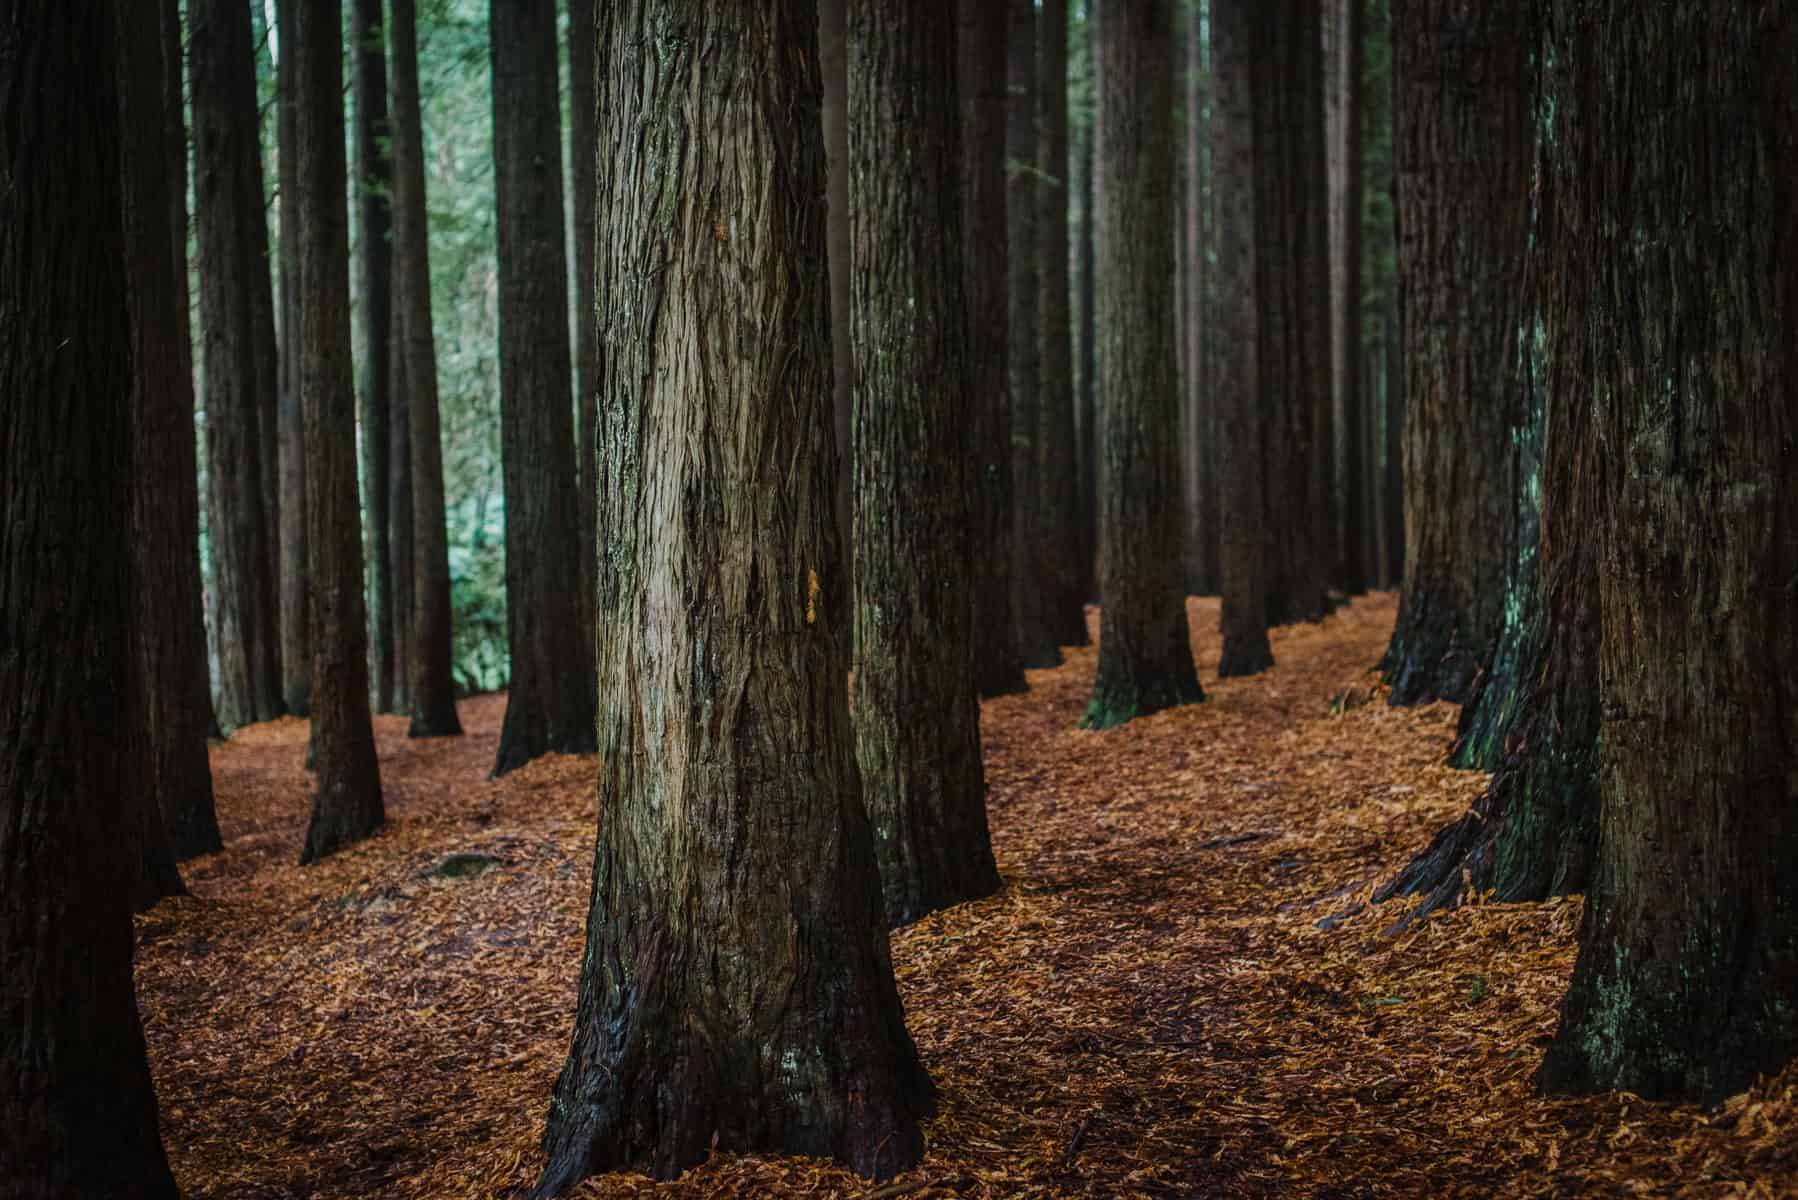 A Photo of the Redwood Plantation in Forrest, Victoria by Colac Otway Photographer Paul Benjamin